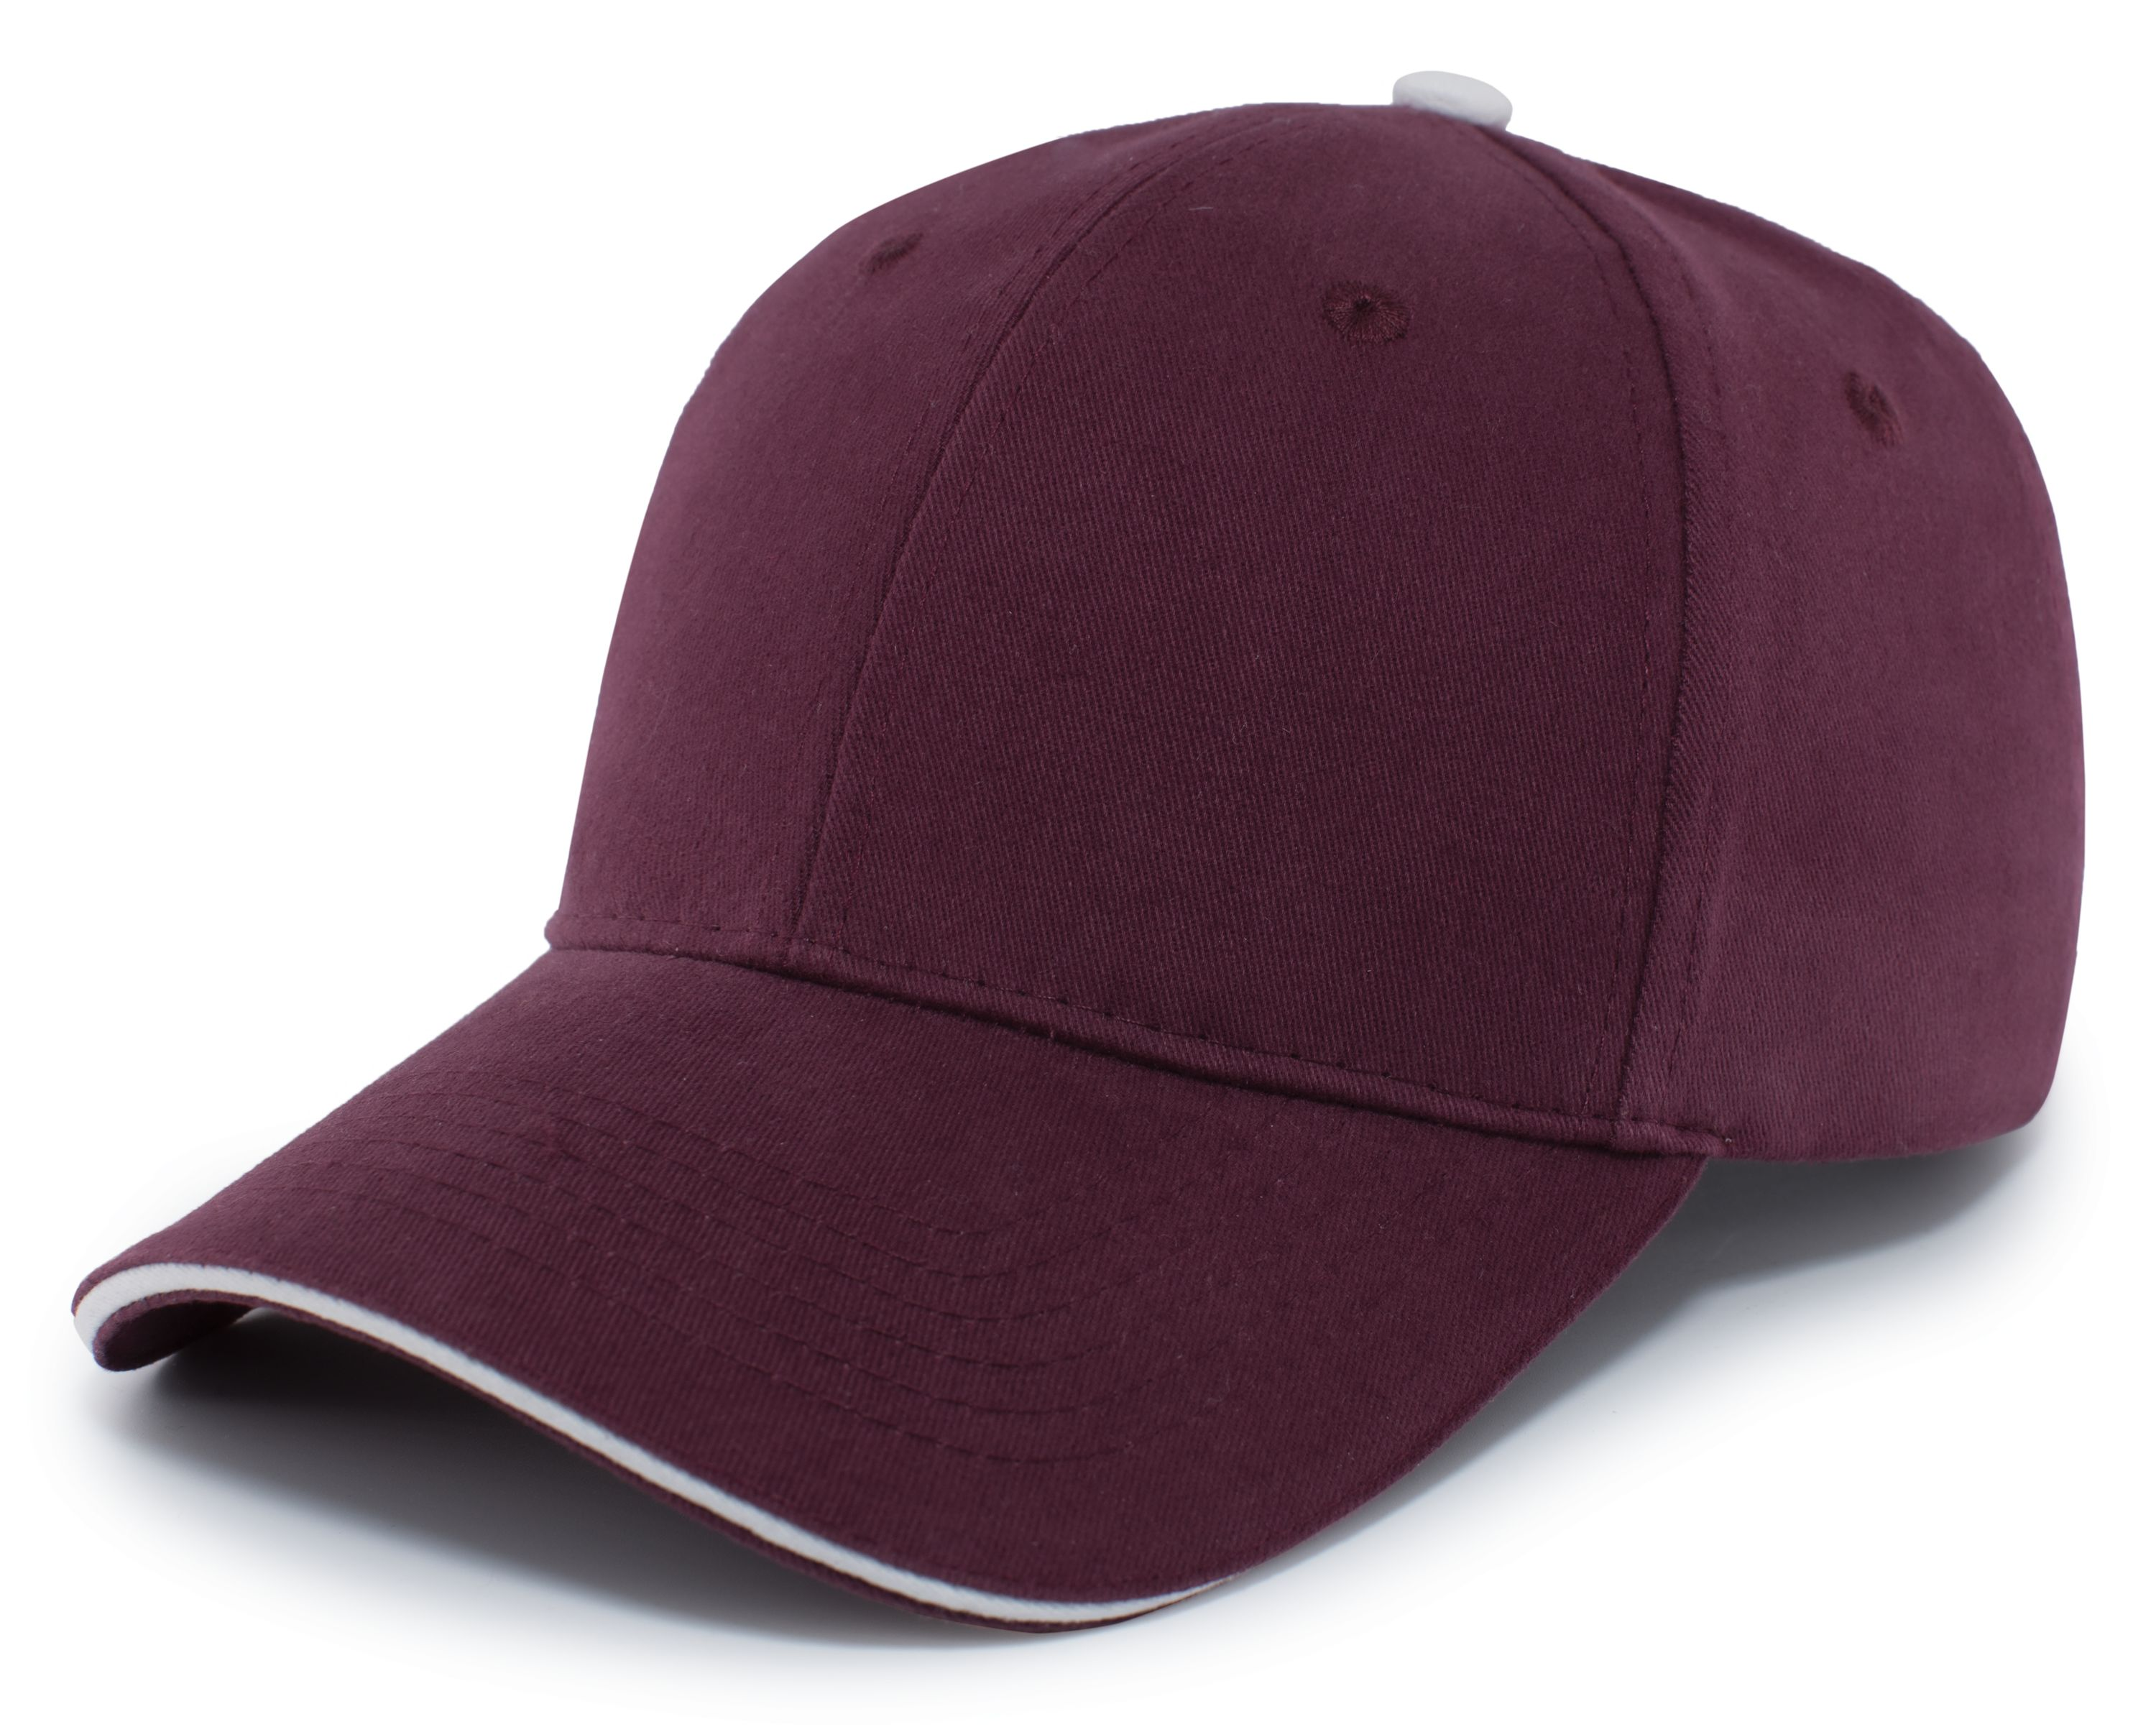 Brushed Twill Cap With Sandwich Bill - MAROON/WHITE